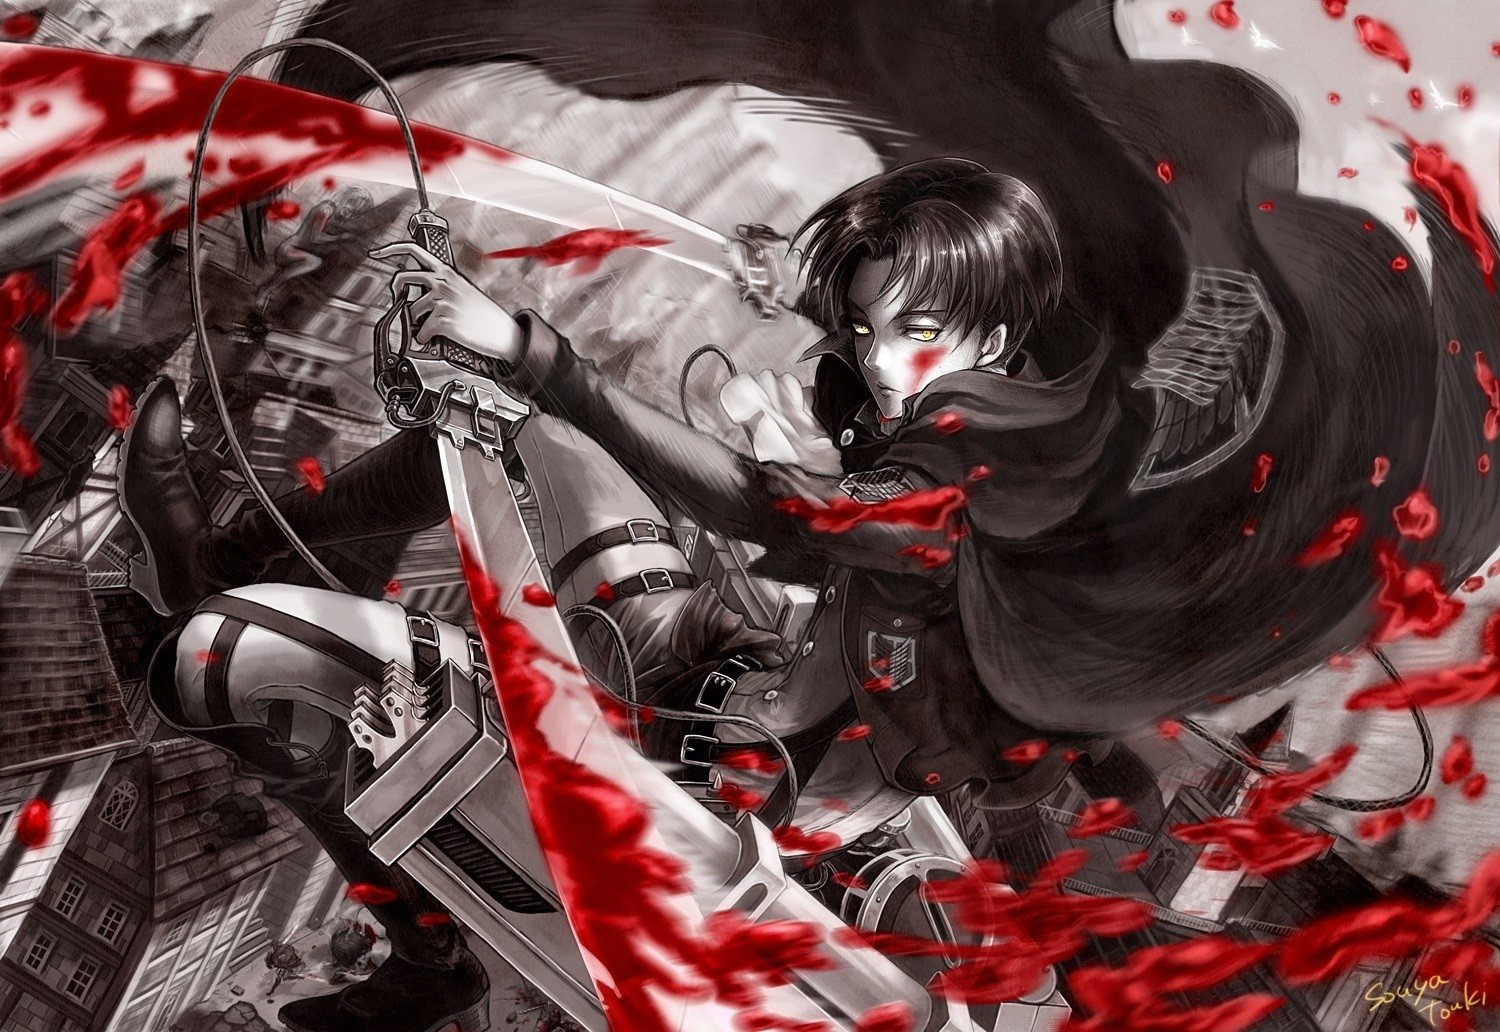 1878 Attack On Titan HD Wallpapers Background Images   Wallpaper 1500x1032